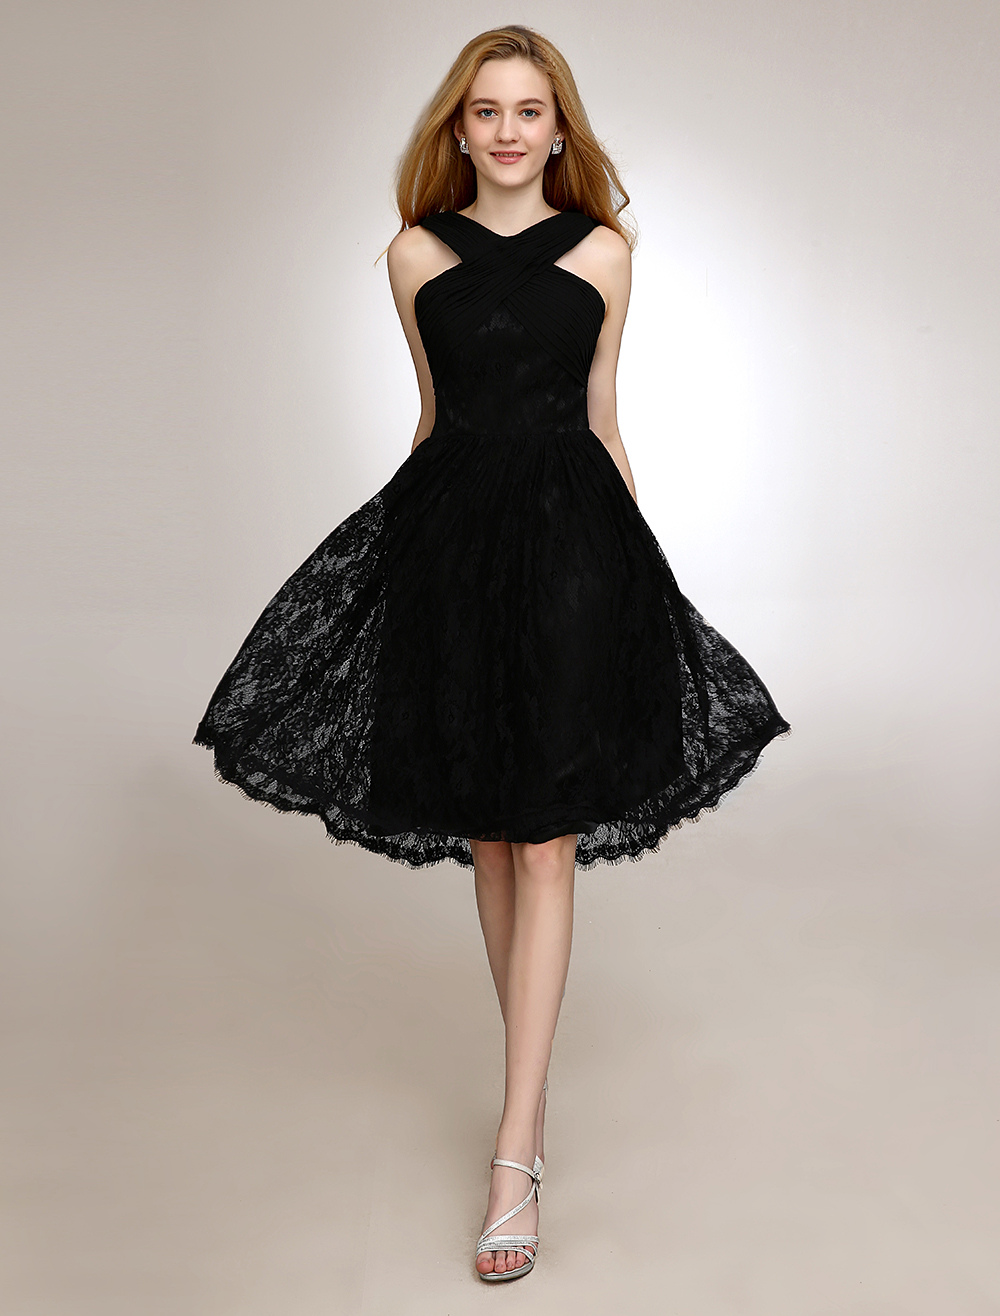 Halter Black Bridesmaid Dress With Lace In Knee Length (Wedding Bridesmaid Dresses) photo